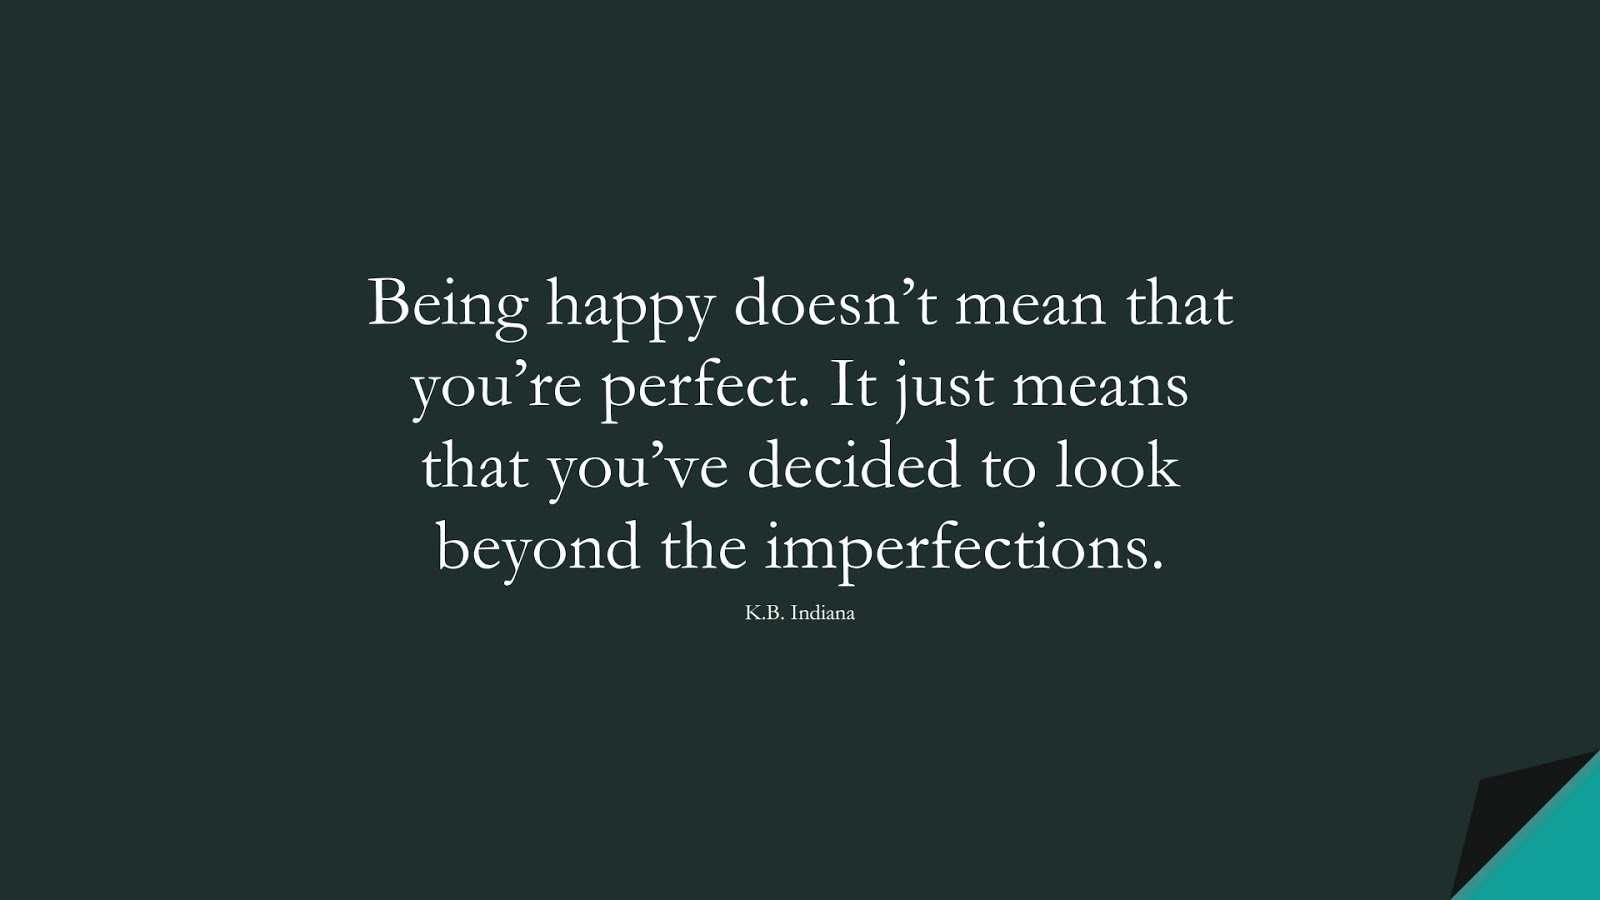 Being happy doesn't mean that you're perfect. It just means that you've decided to look beyond the imperfections. (K.B. Indiana);  #LifeQuotes